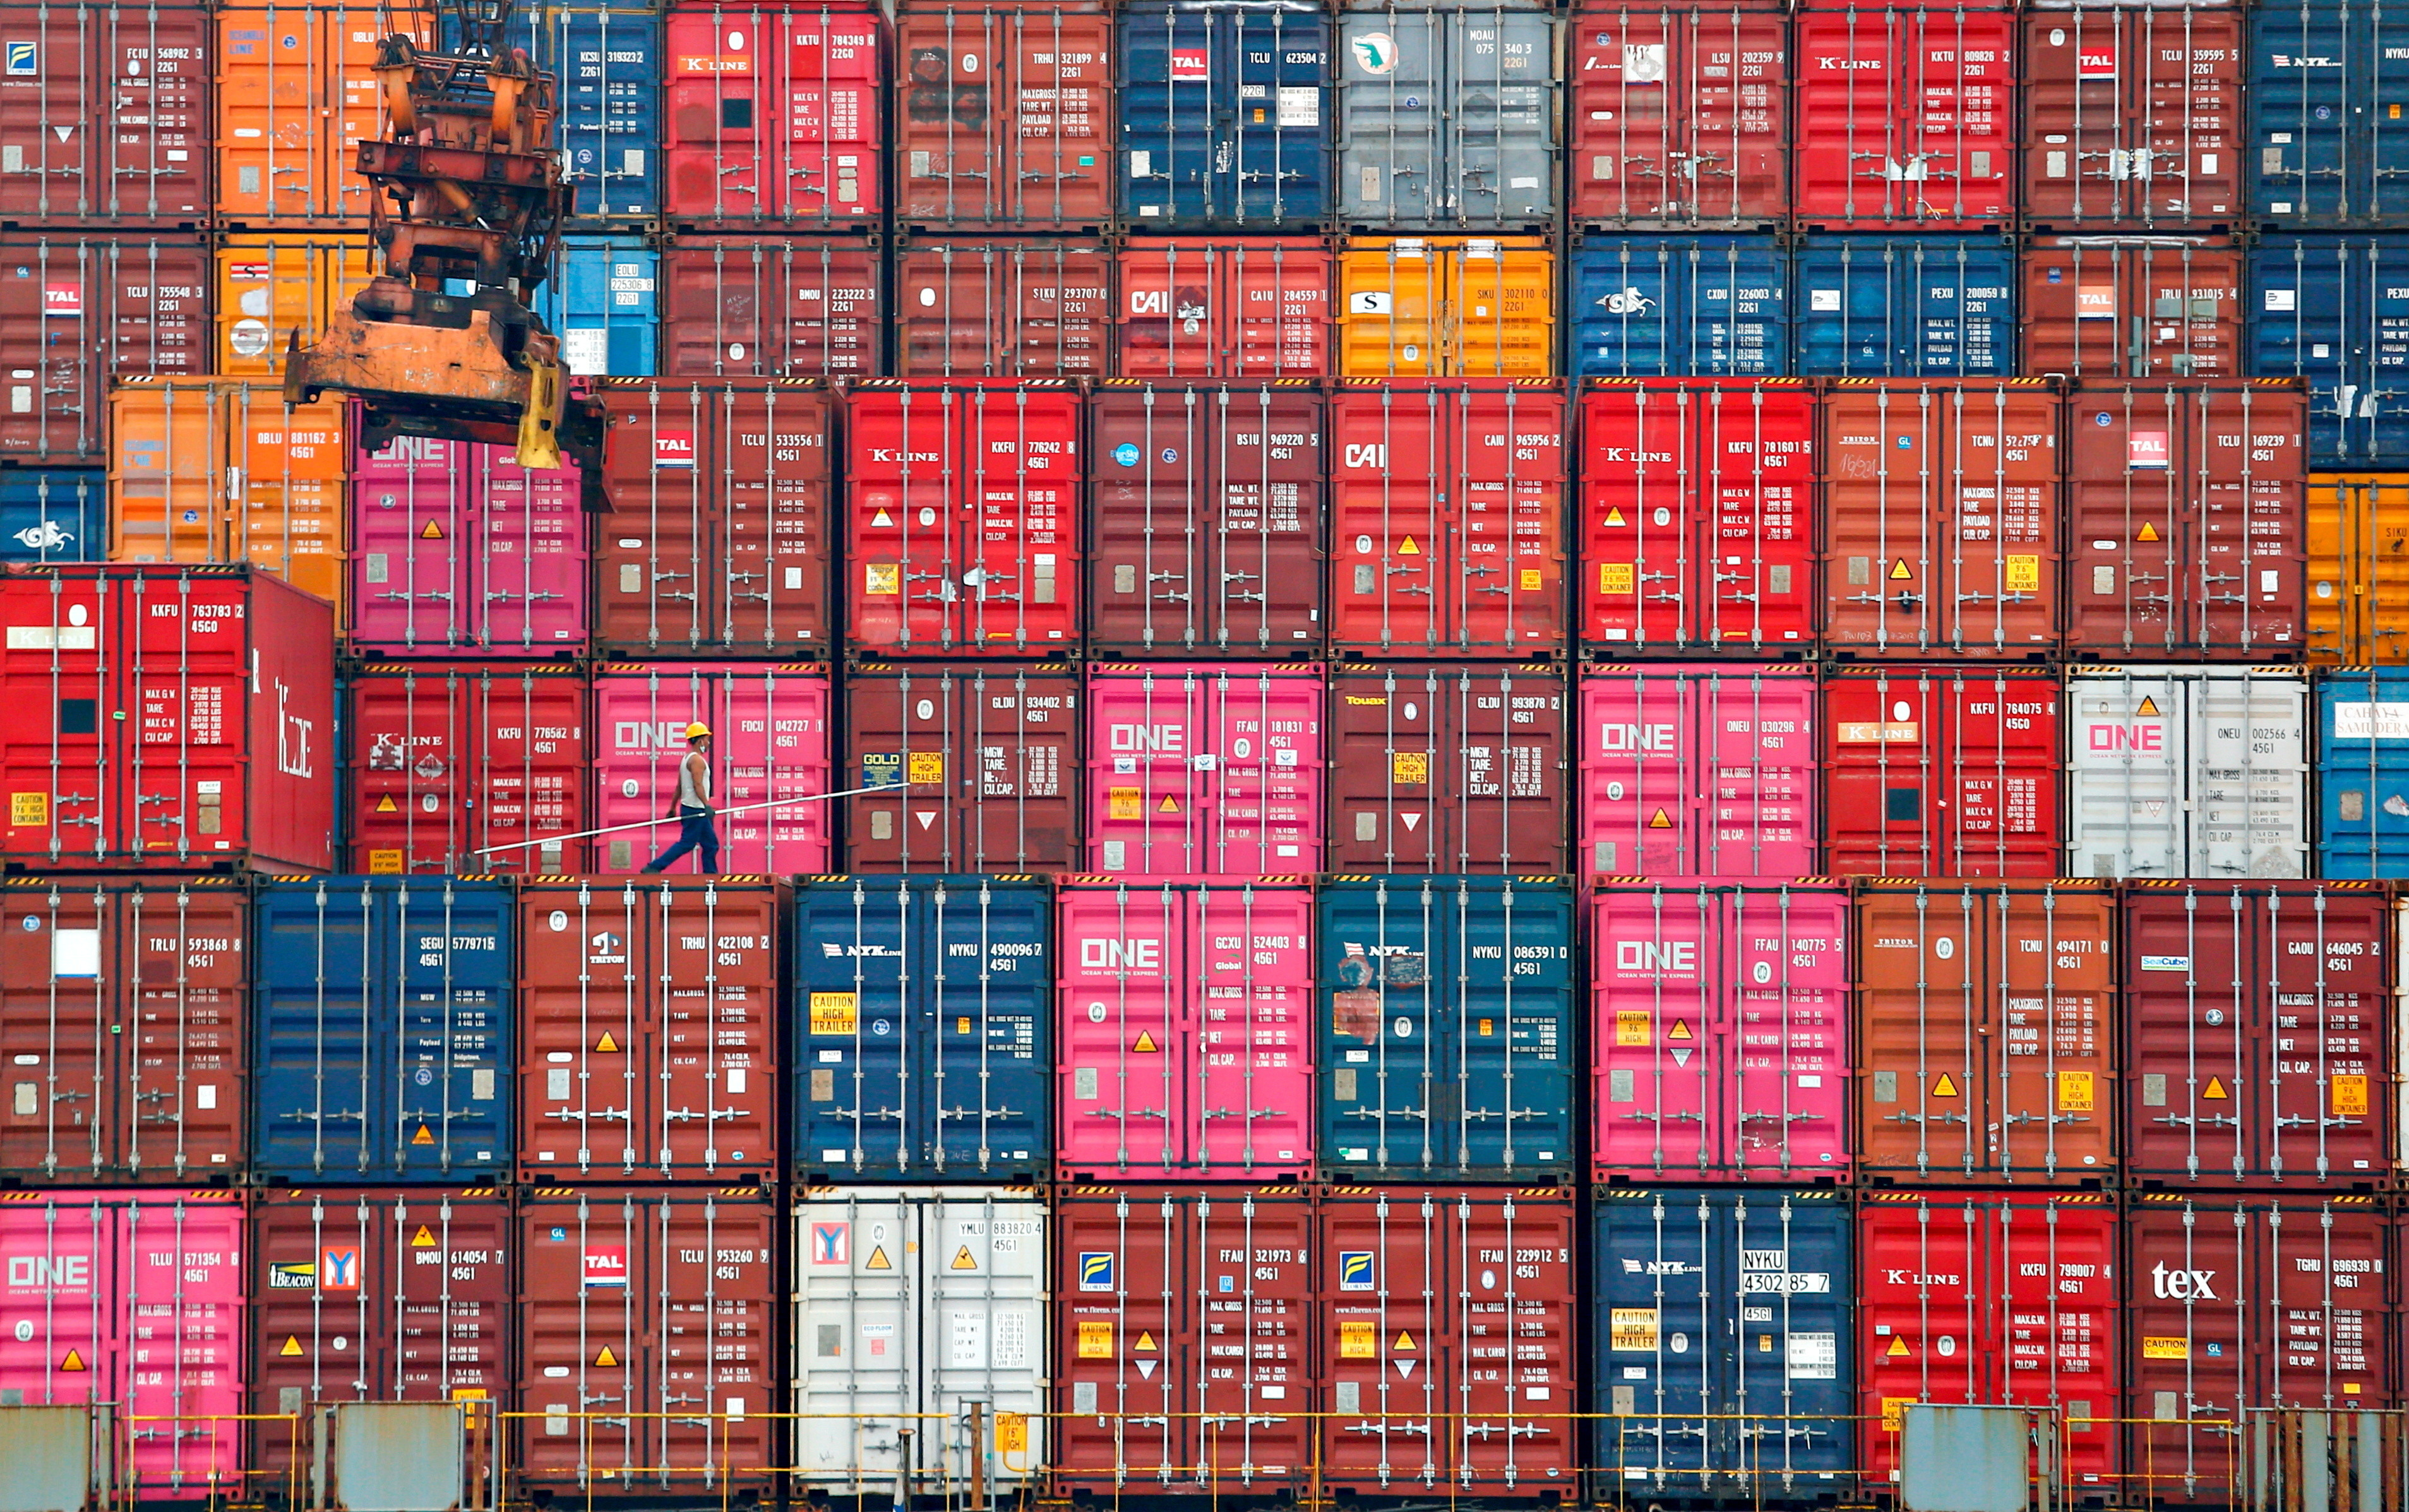 A worker walks on stacks of containers at the Tanjung Priok port in Jakarta, Indonesia, January 22, 2021. REUTERS/Ajeng Dinar Ulfiana     TPX IMAGES OF THE DAY - RC2WCL9EYDE4